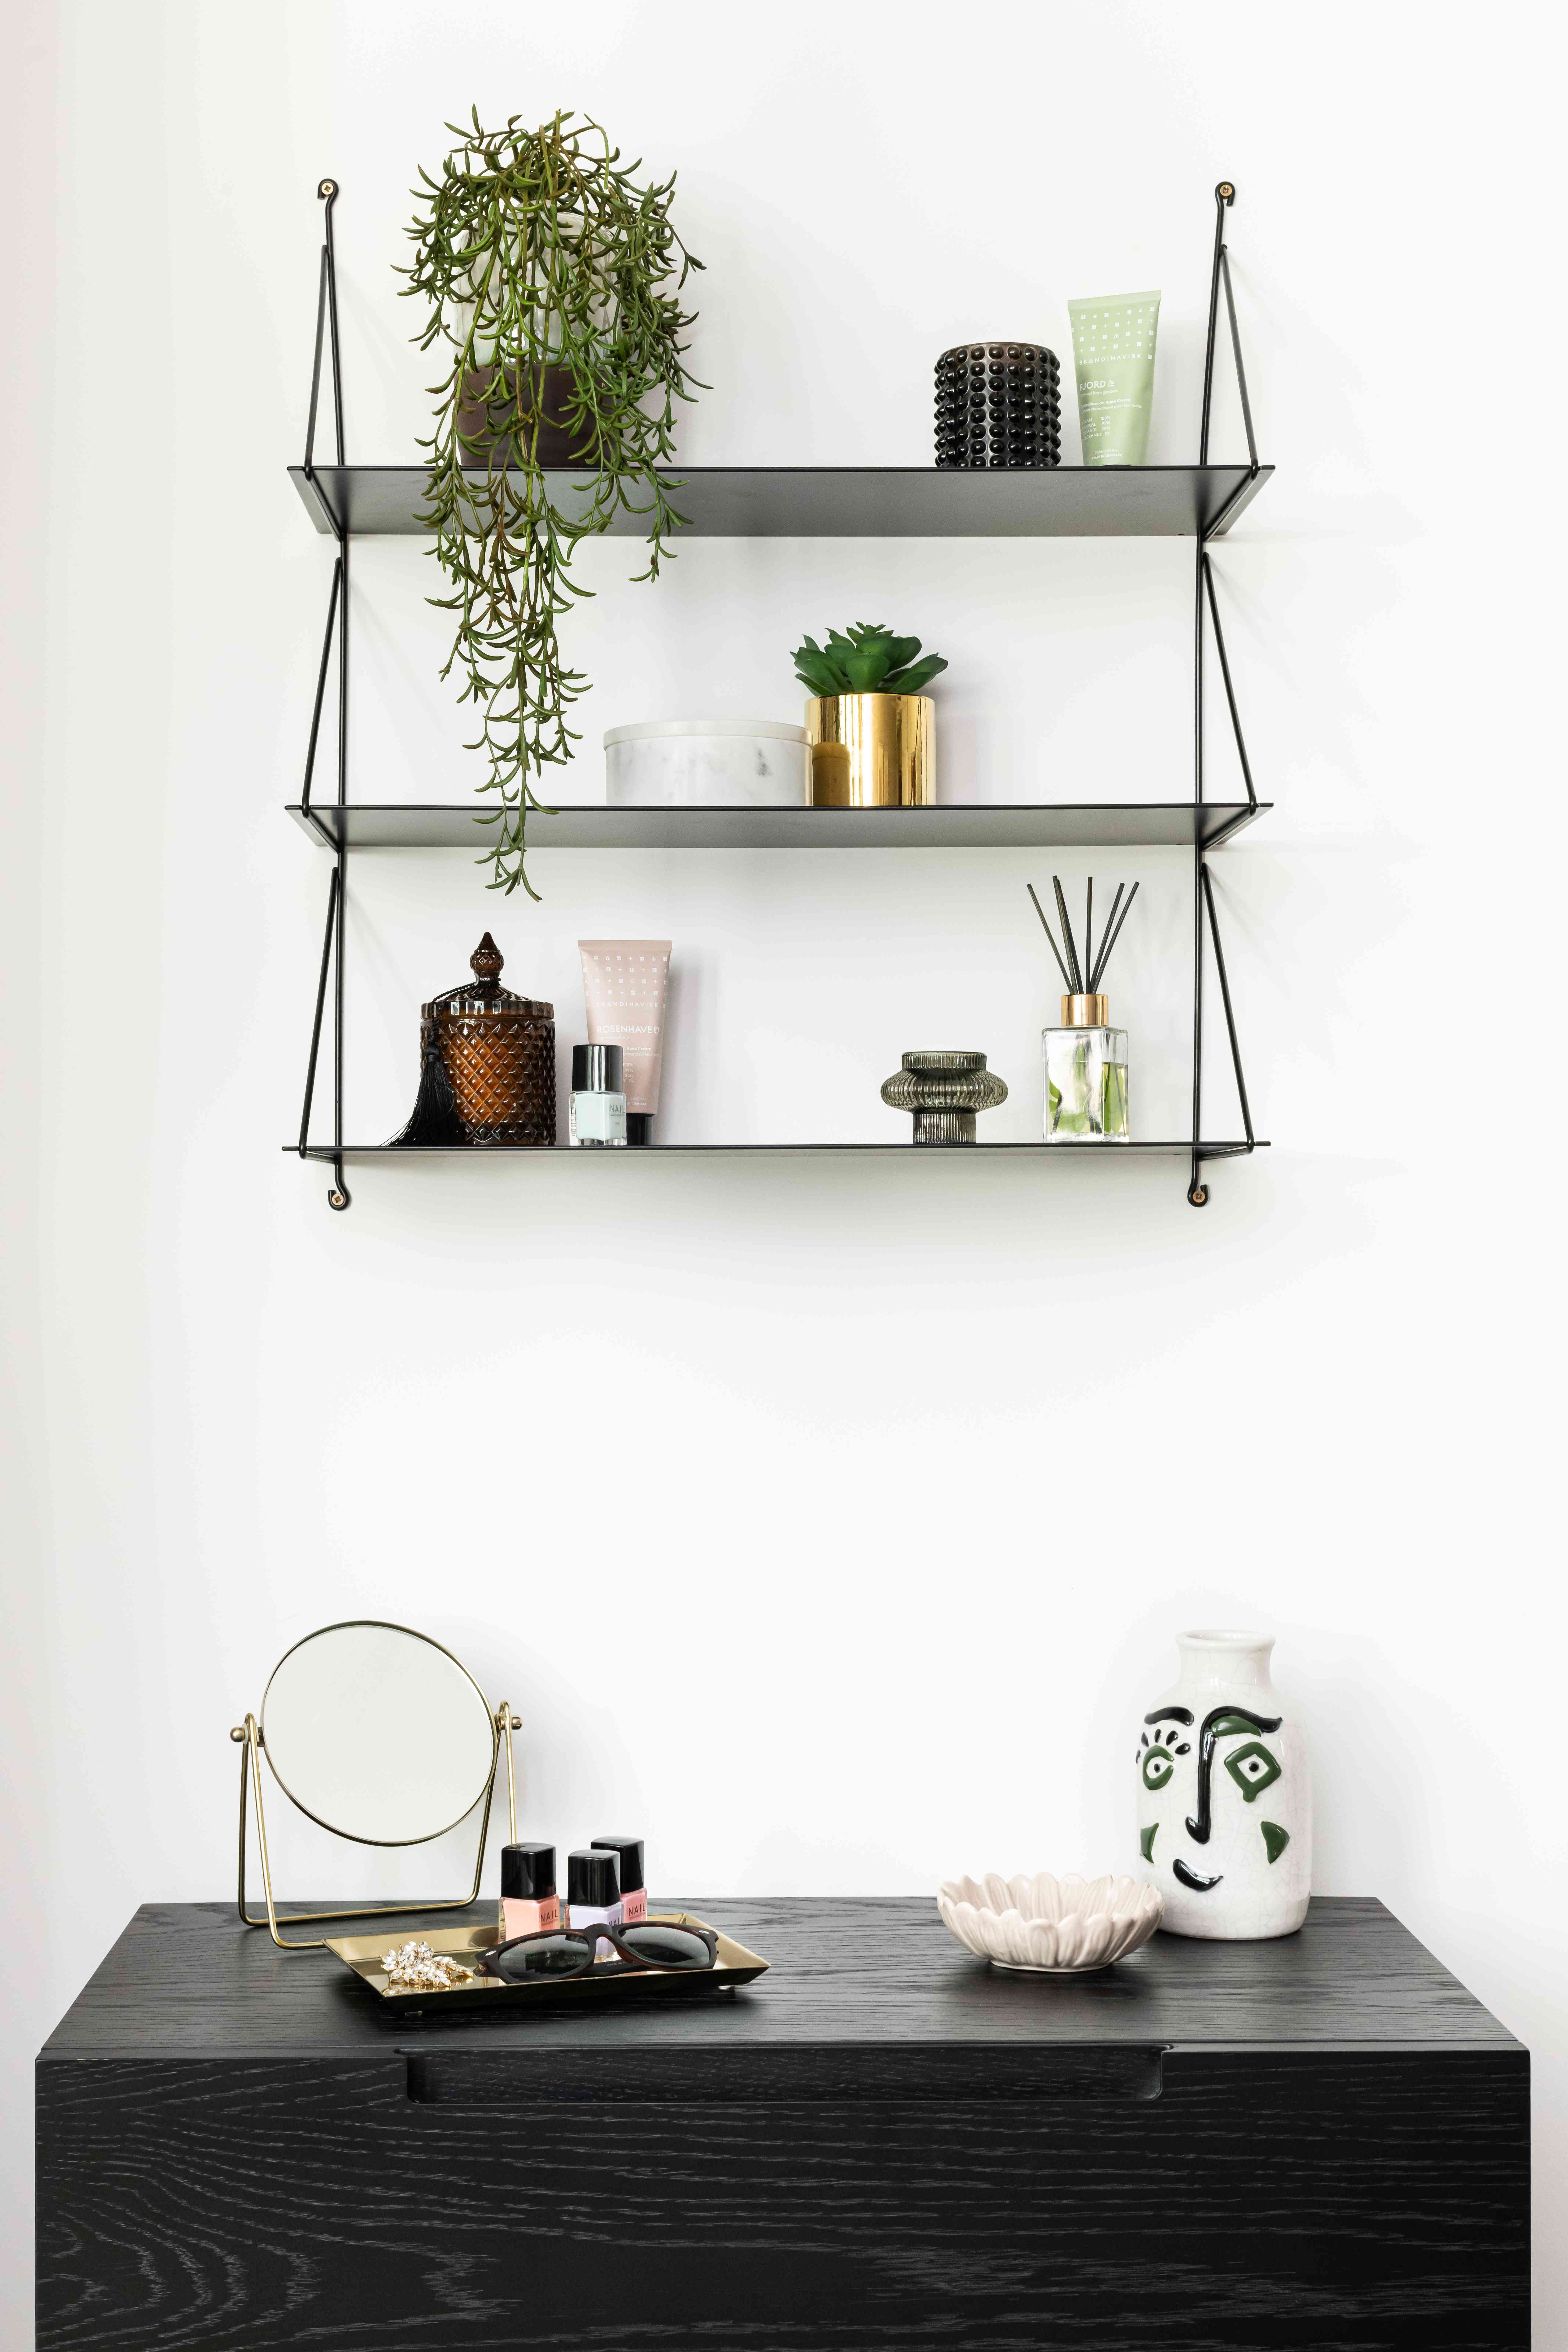 styled wall shelves feature plants and follow the triangle rule